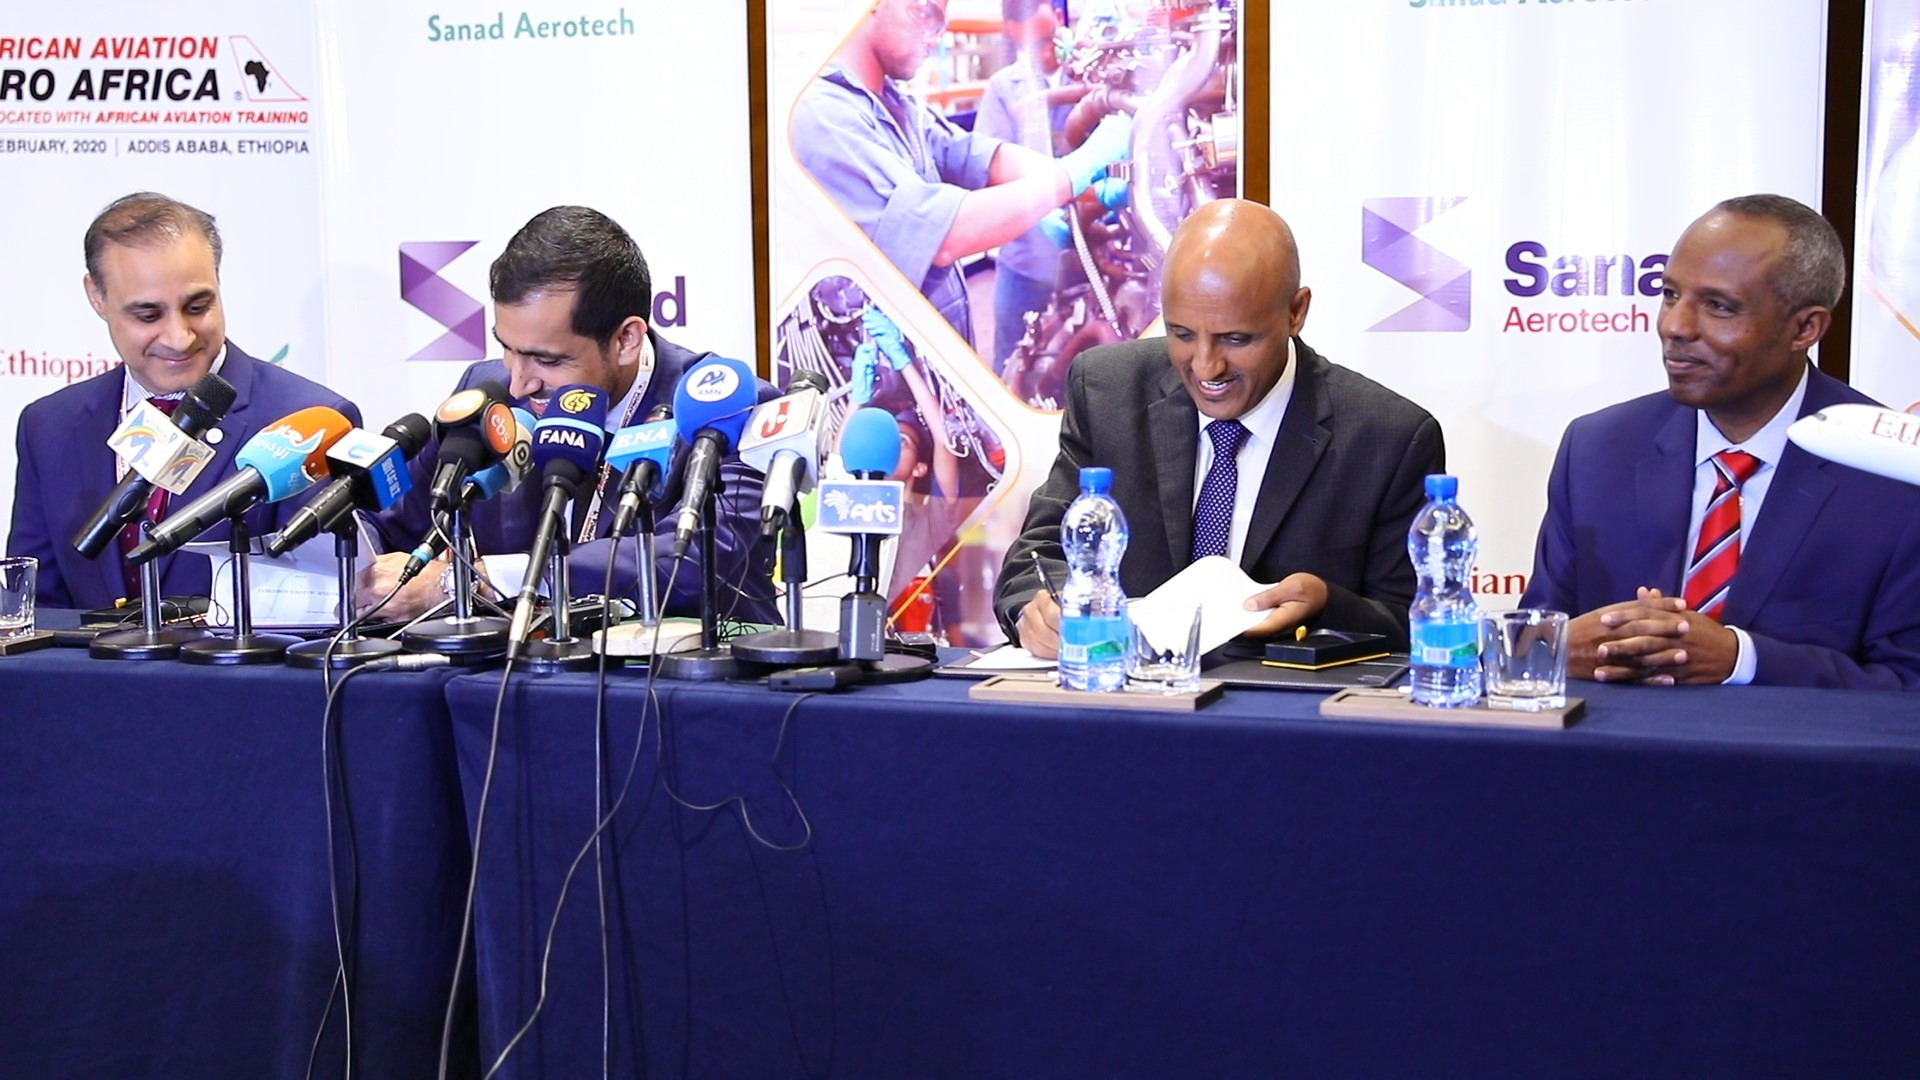 SANAD and Ethiopian Airlines signs agreement to establish MRO Centre of Excellence in Africa